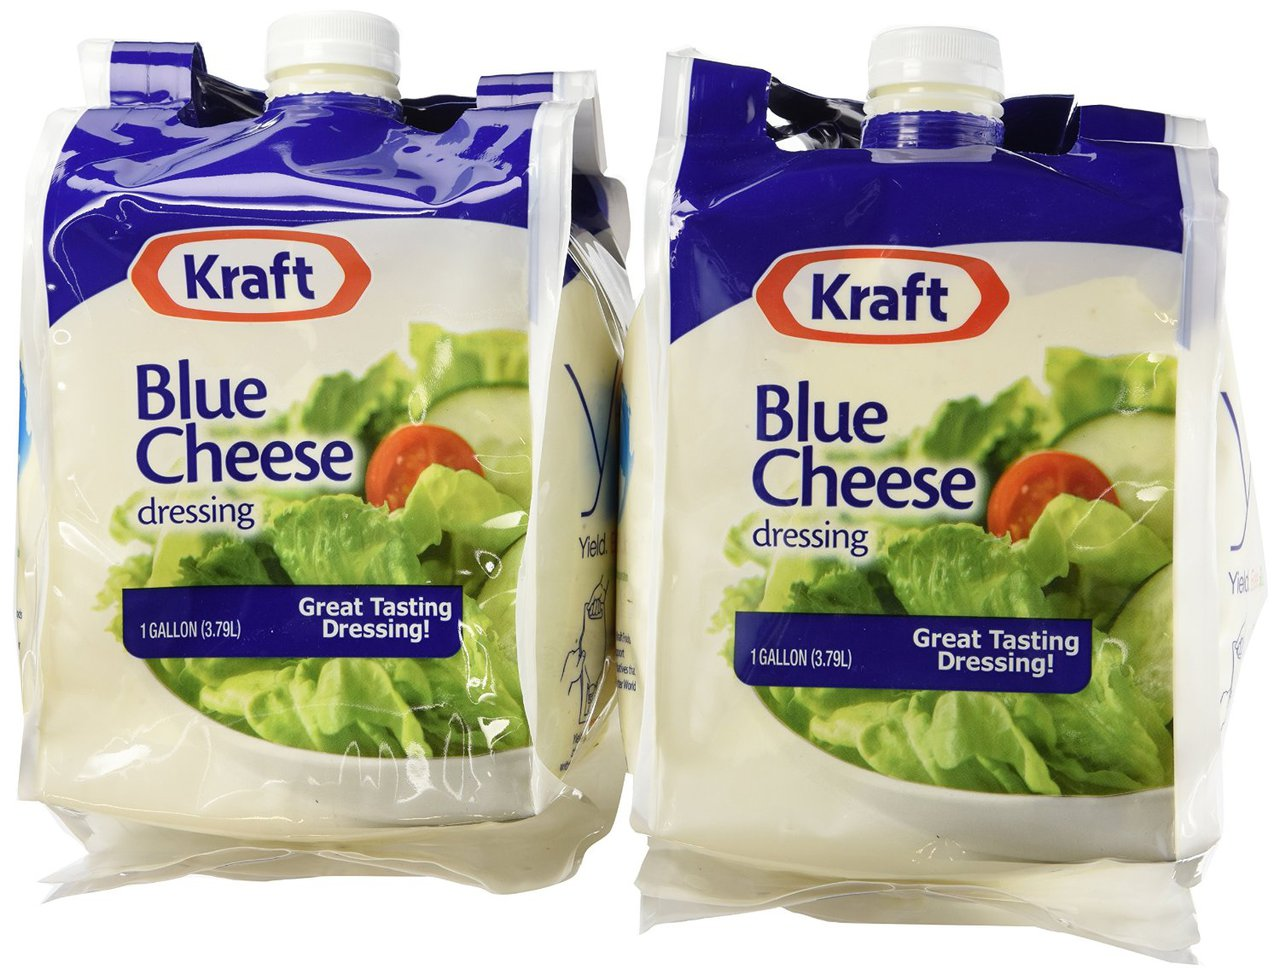 4 PACKS : Kraft Brand Dressing Blue Cheese Liquid 1 gallon, 2 Count by